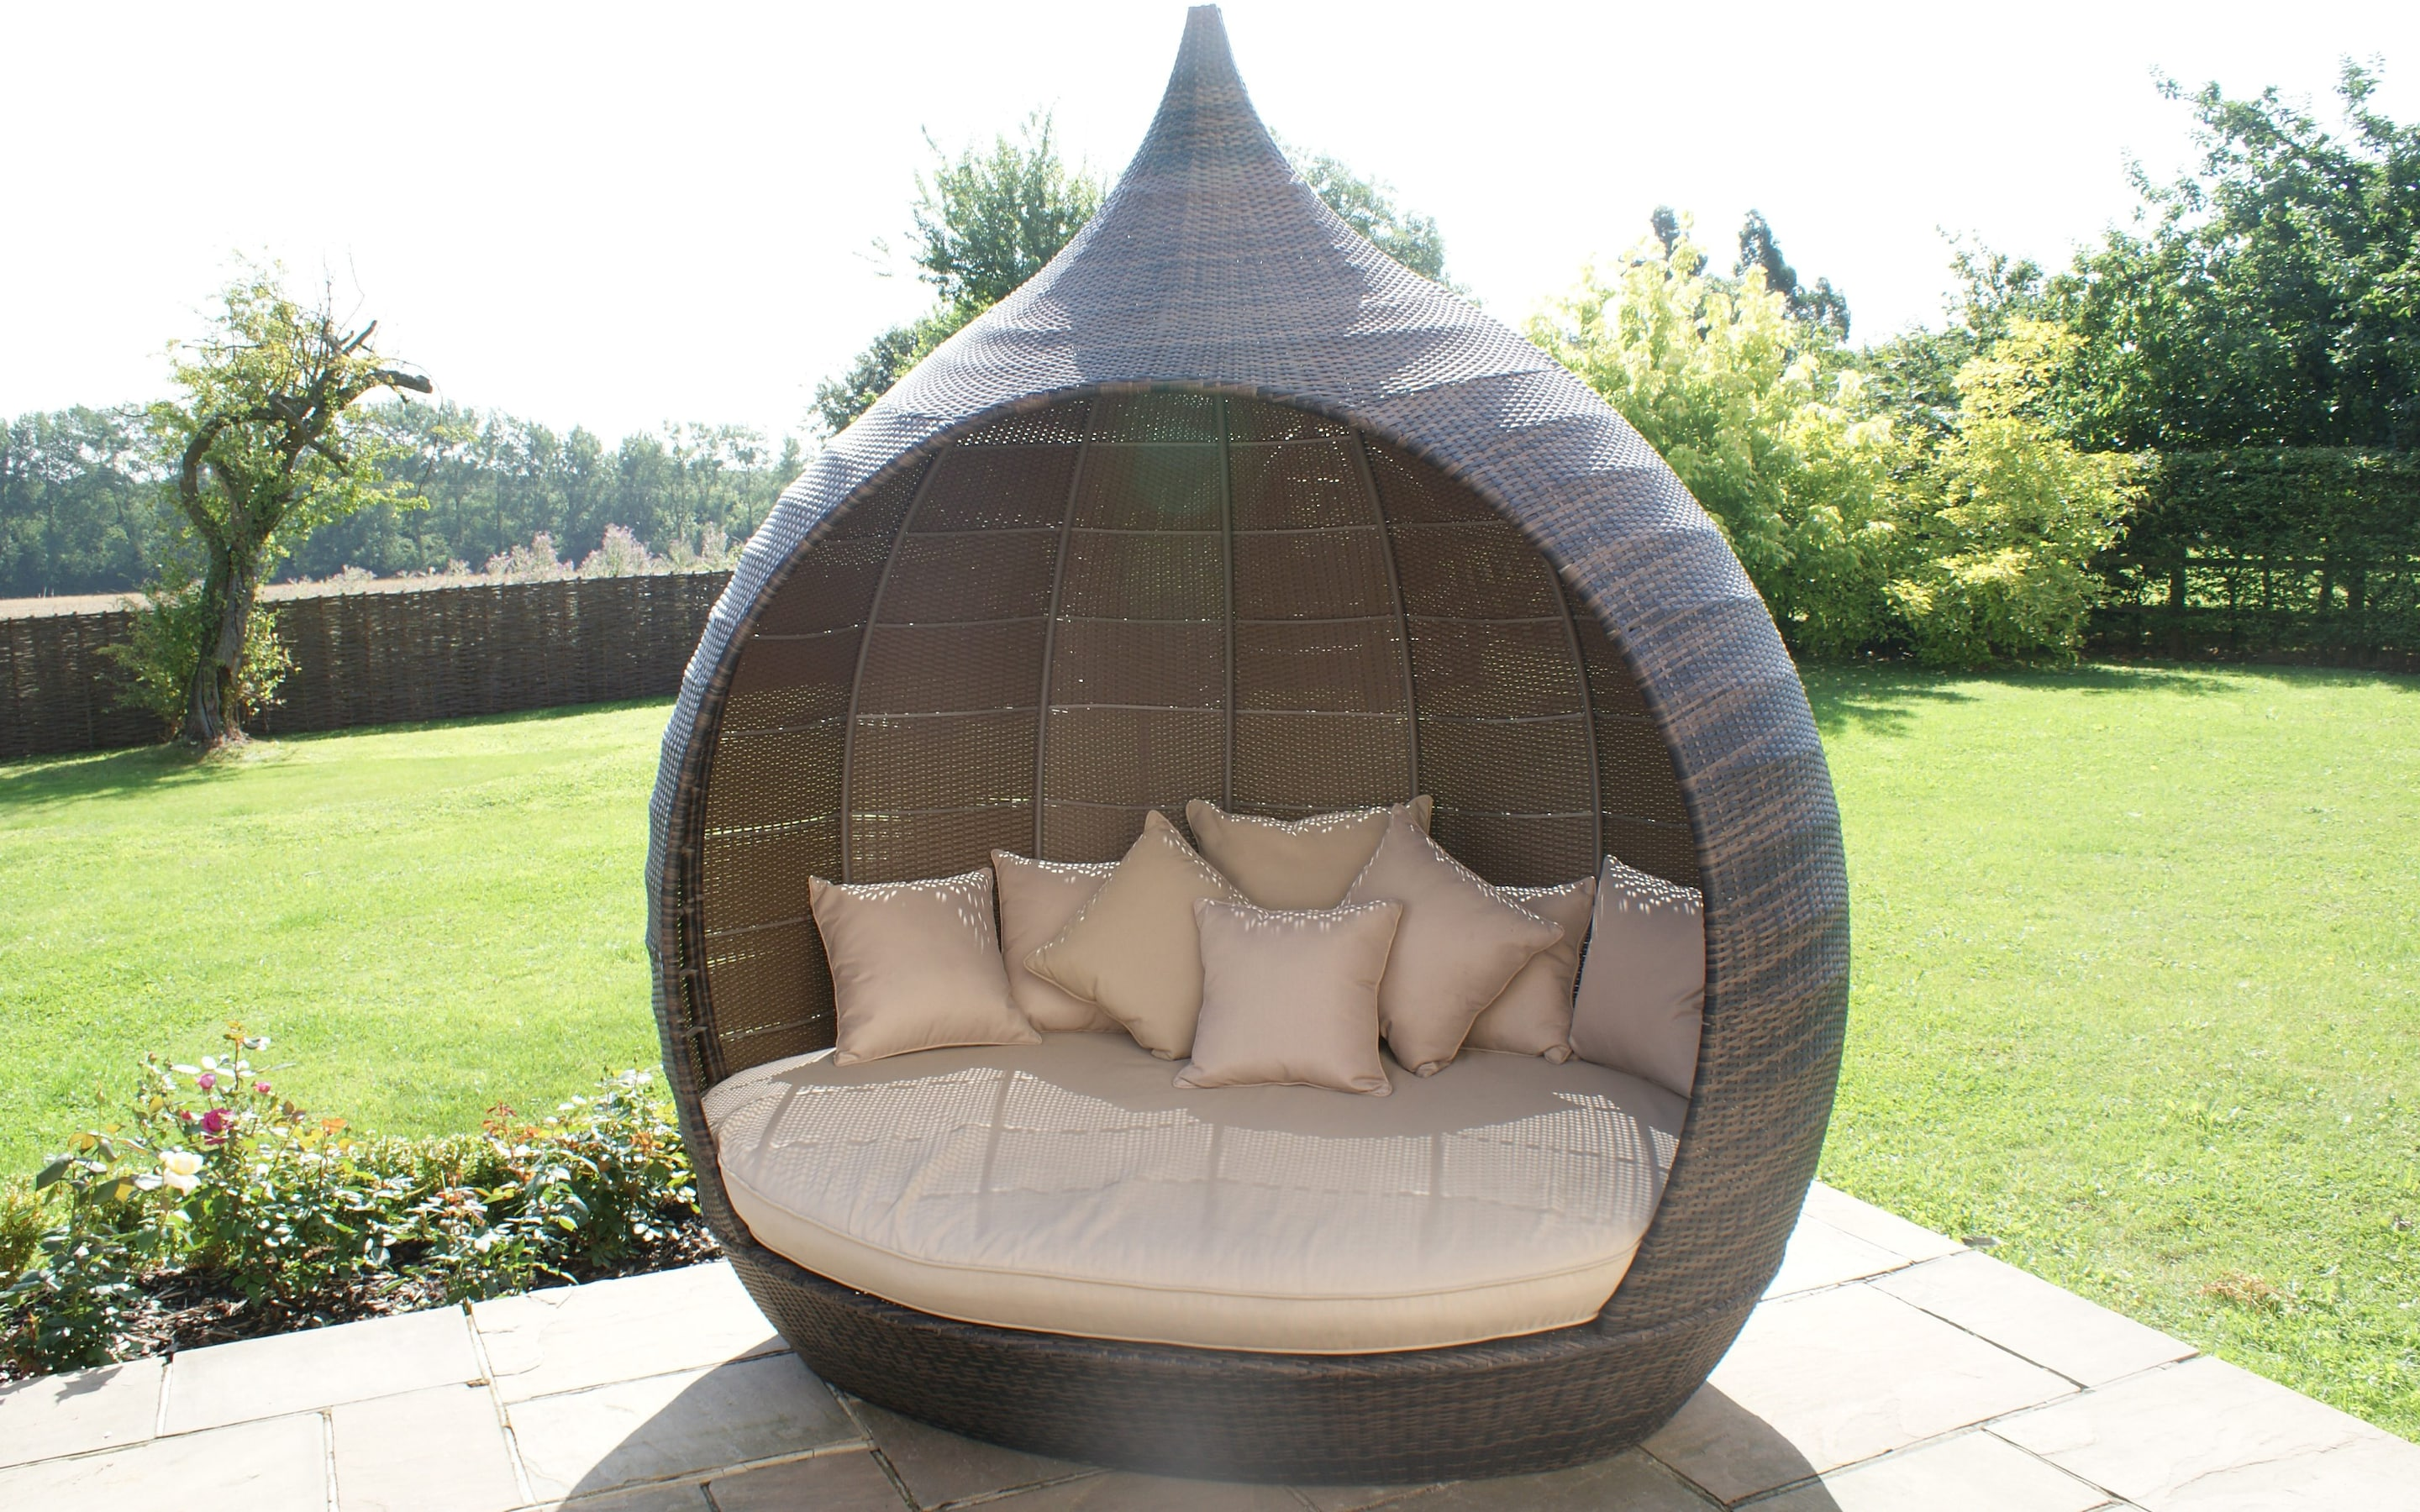 Getting your garden furniture right with rattan  The